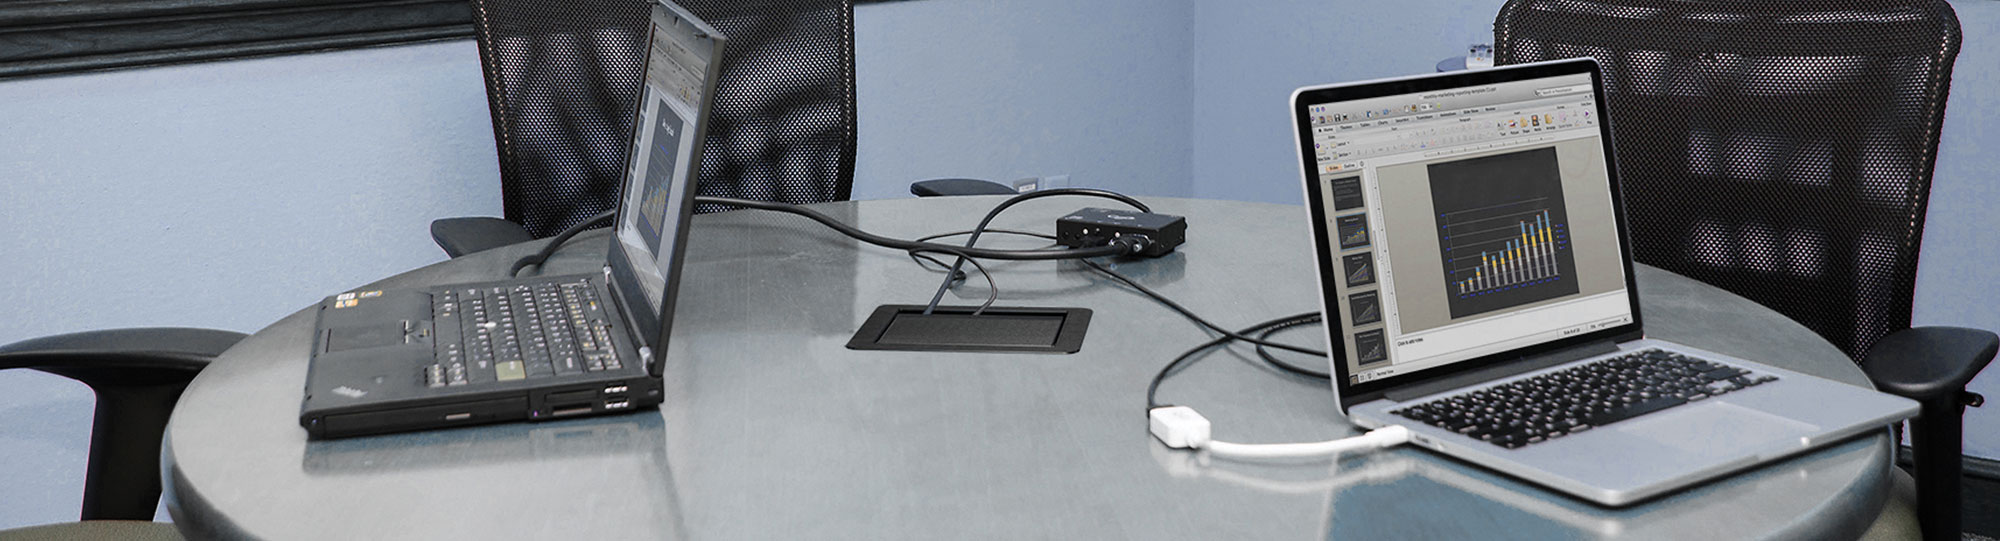 Laptop computers on table